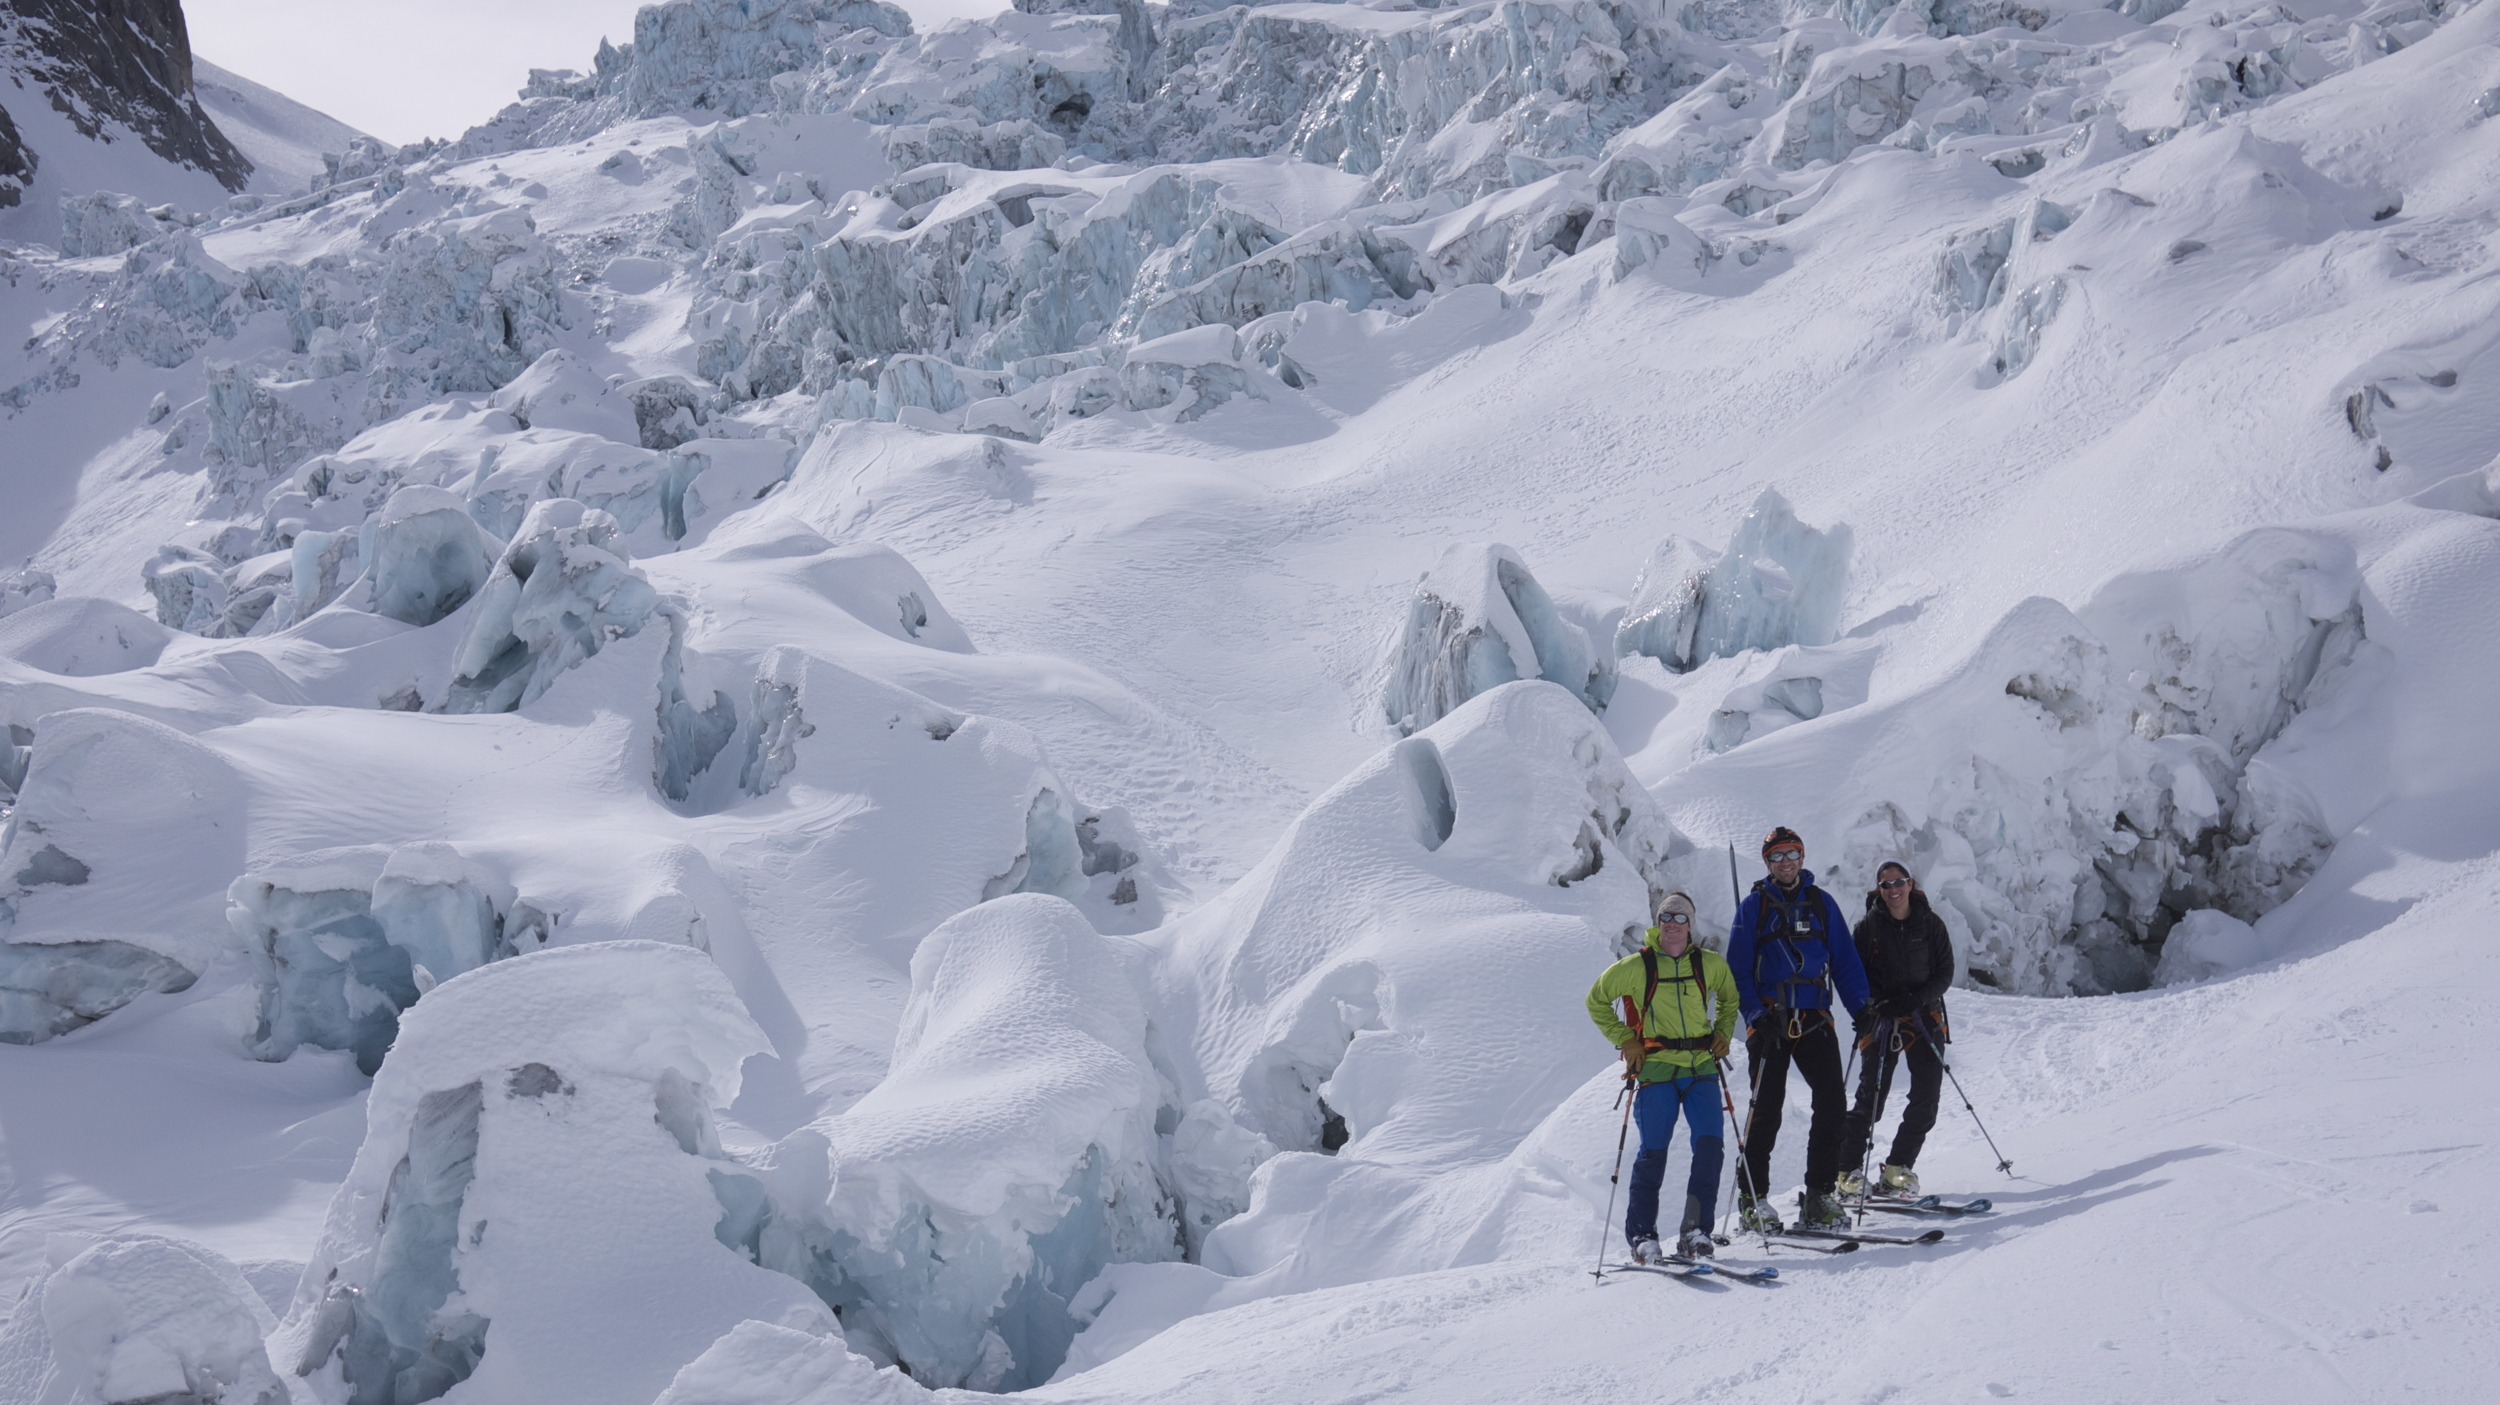 Day 0: What's cooler than being cool? The Vallee Blanche.